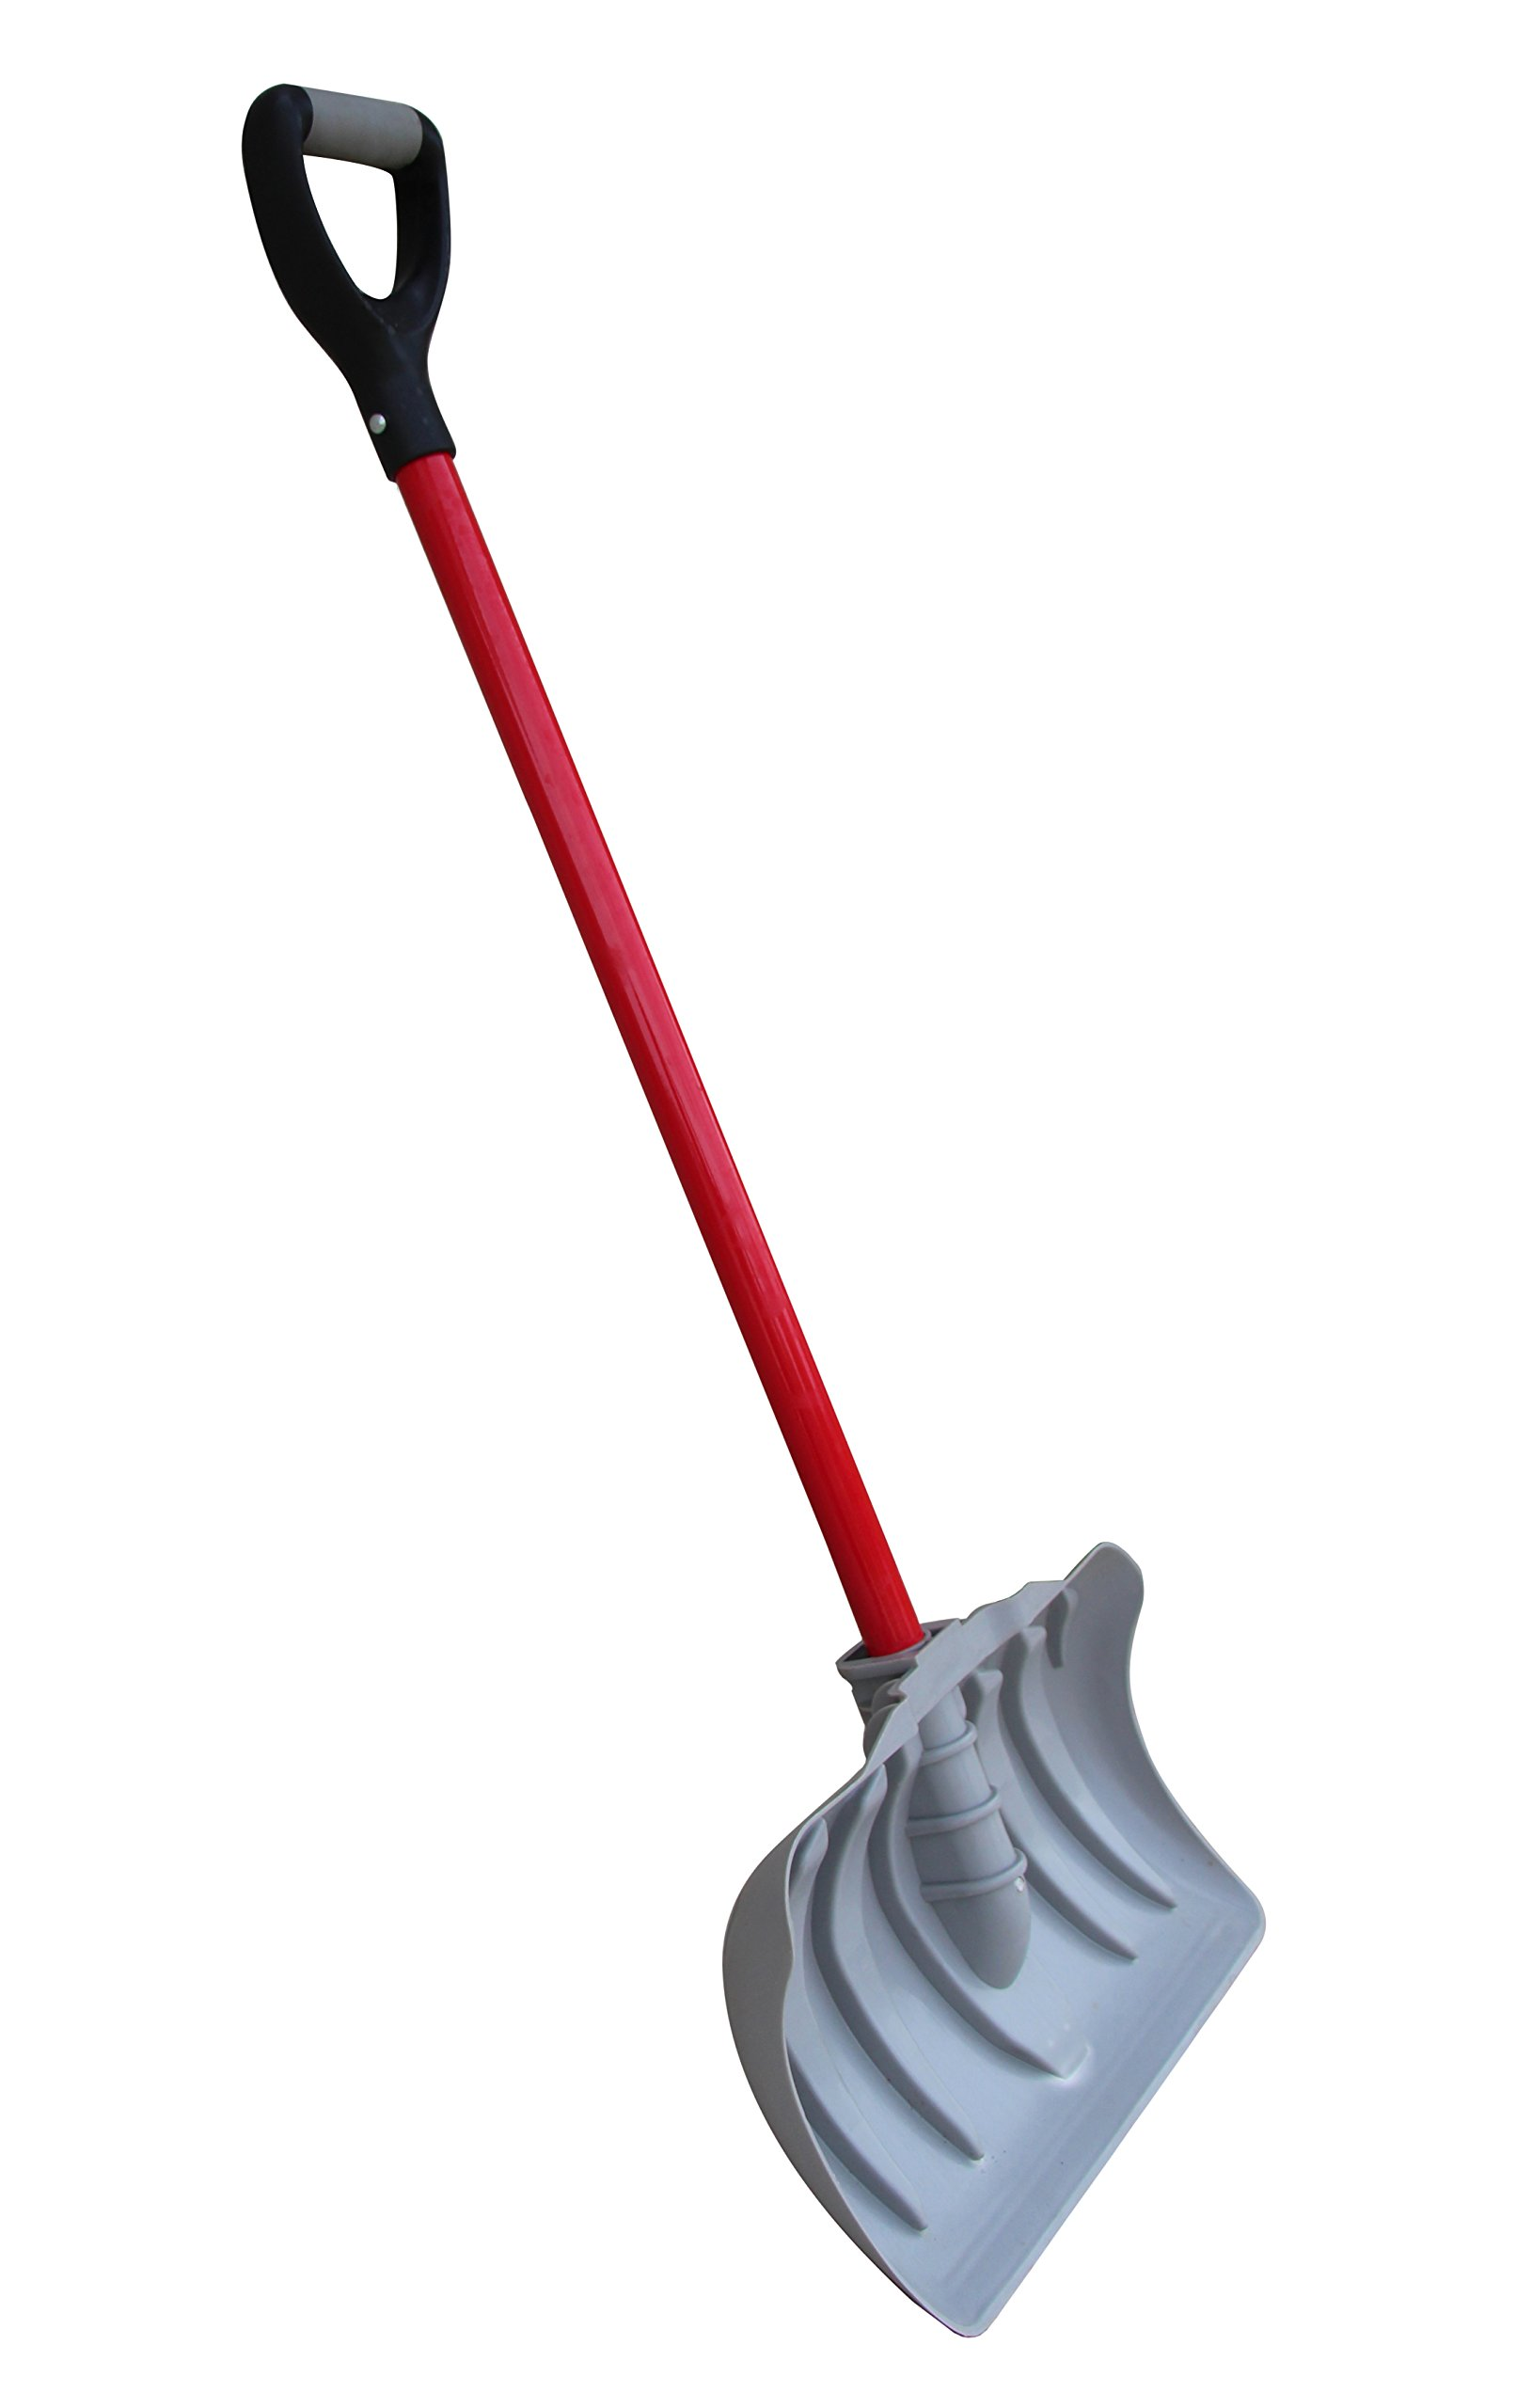 TABOR TOOLS Snow Pusher with Fiberglass Handle, 18 Inch Wide Blade, Snow Shovel with Comfortable D Grip Handle. J219A. (Snow Pusher, Long 35 Inch Handle)  by TABOR TOOLS